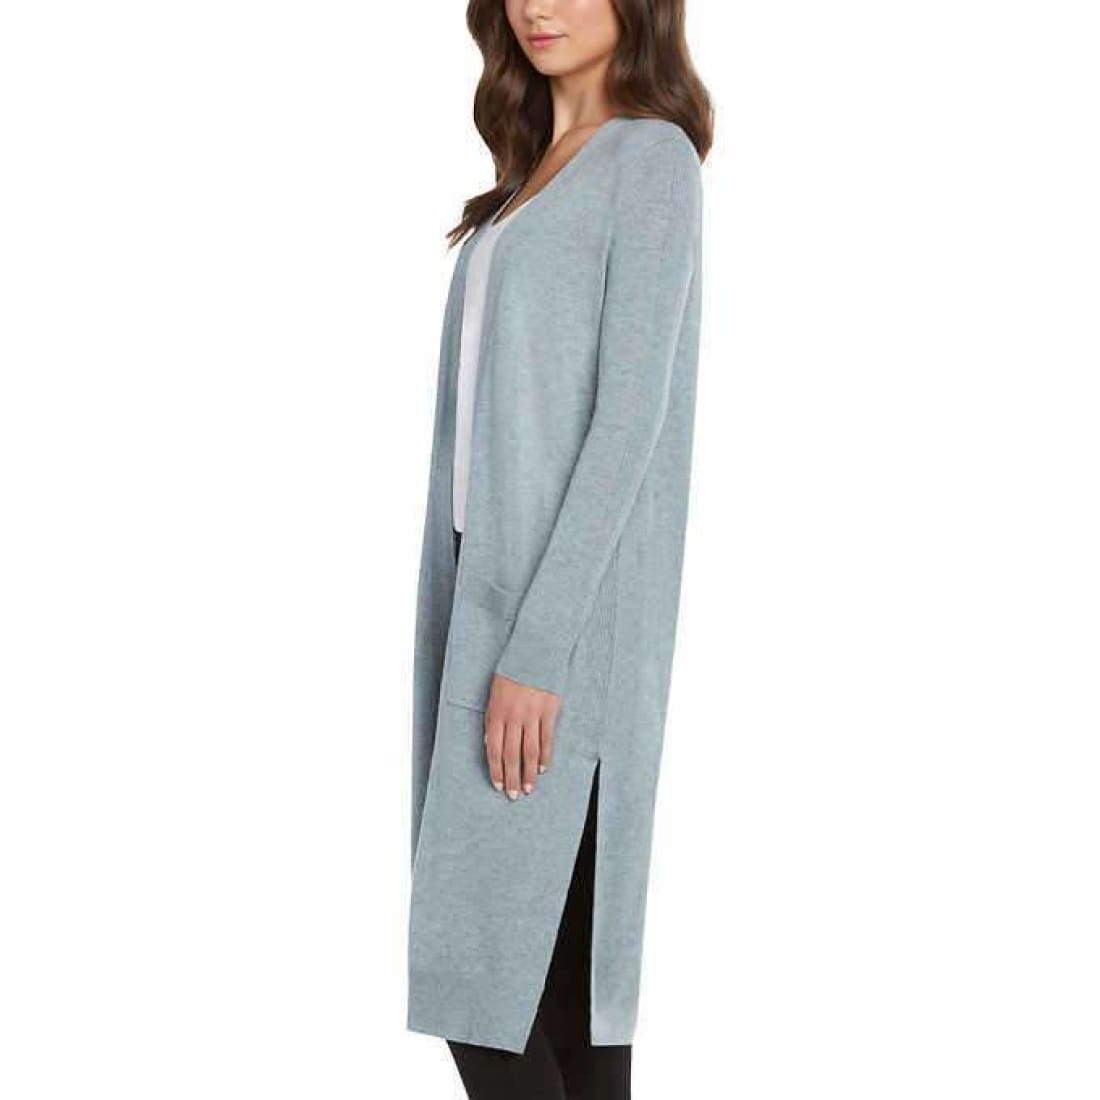 Matty M Ladies Open Front Cardigan Duster (Open Package) Cardigan Duster